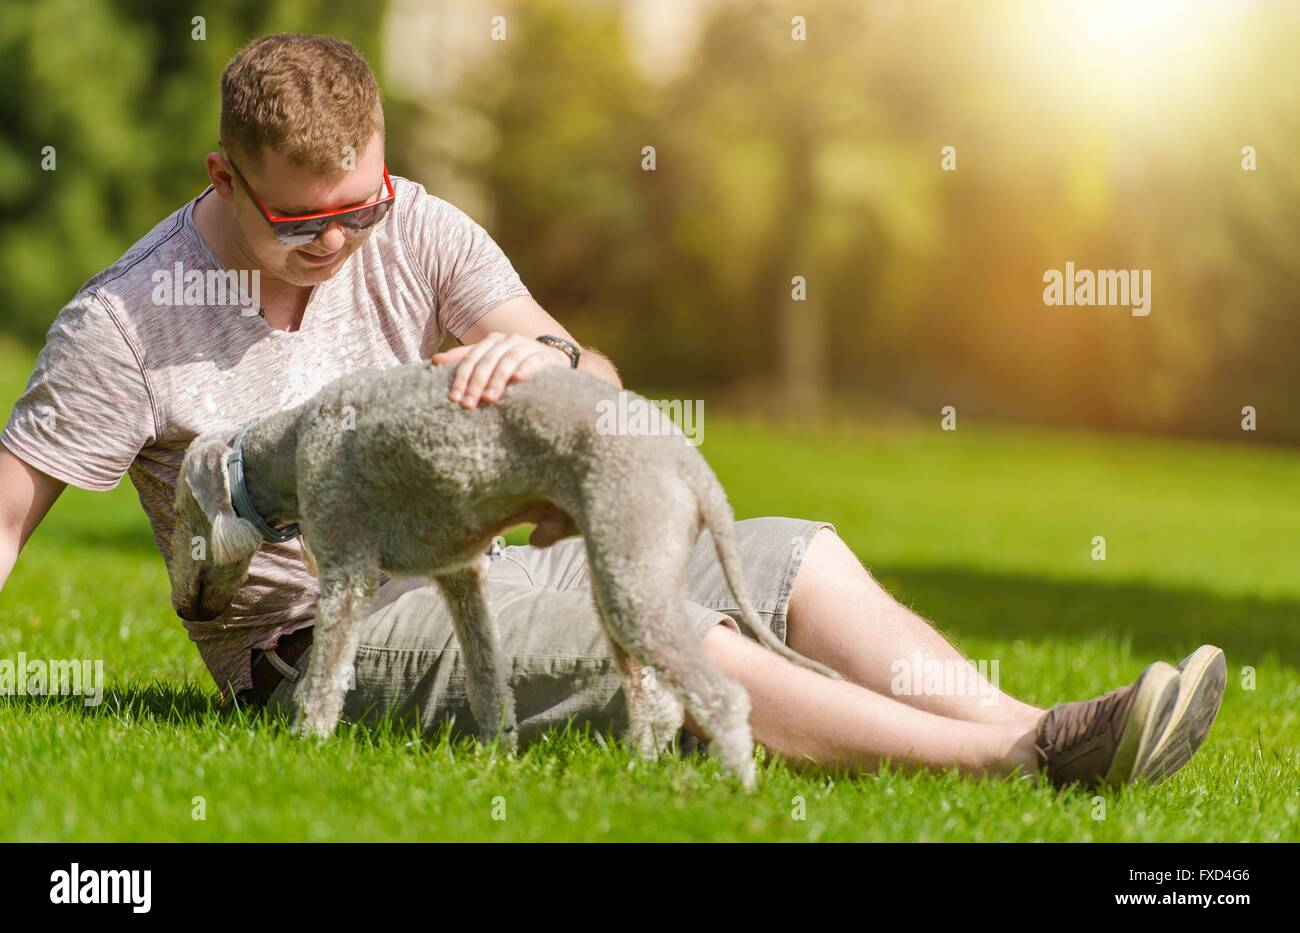 Men Playing with His Bedlington Terrier Dog  in the Park During Summer Day. Dog Man's Best Friend. - Stock Image